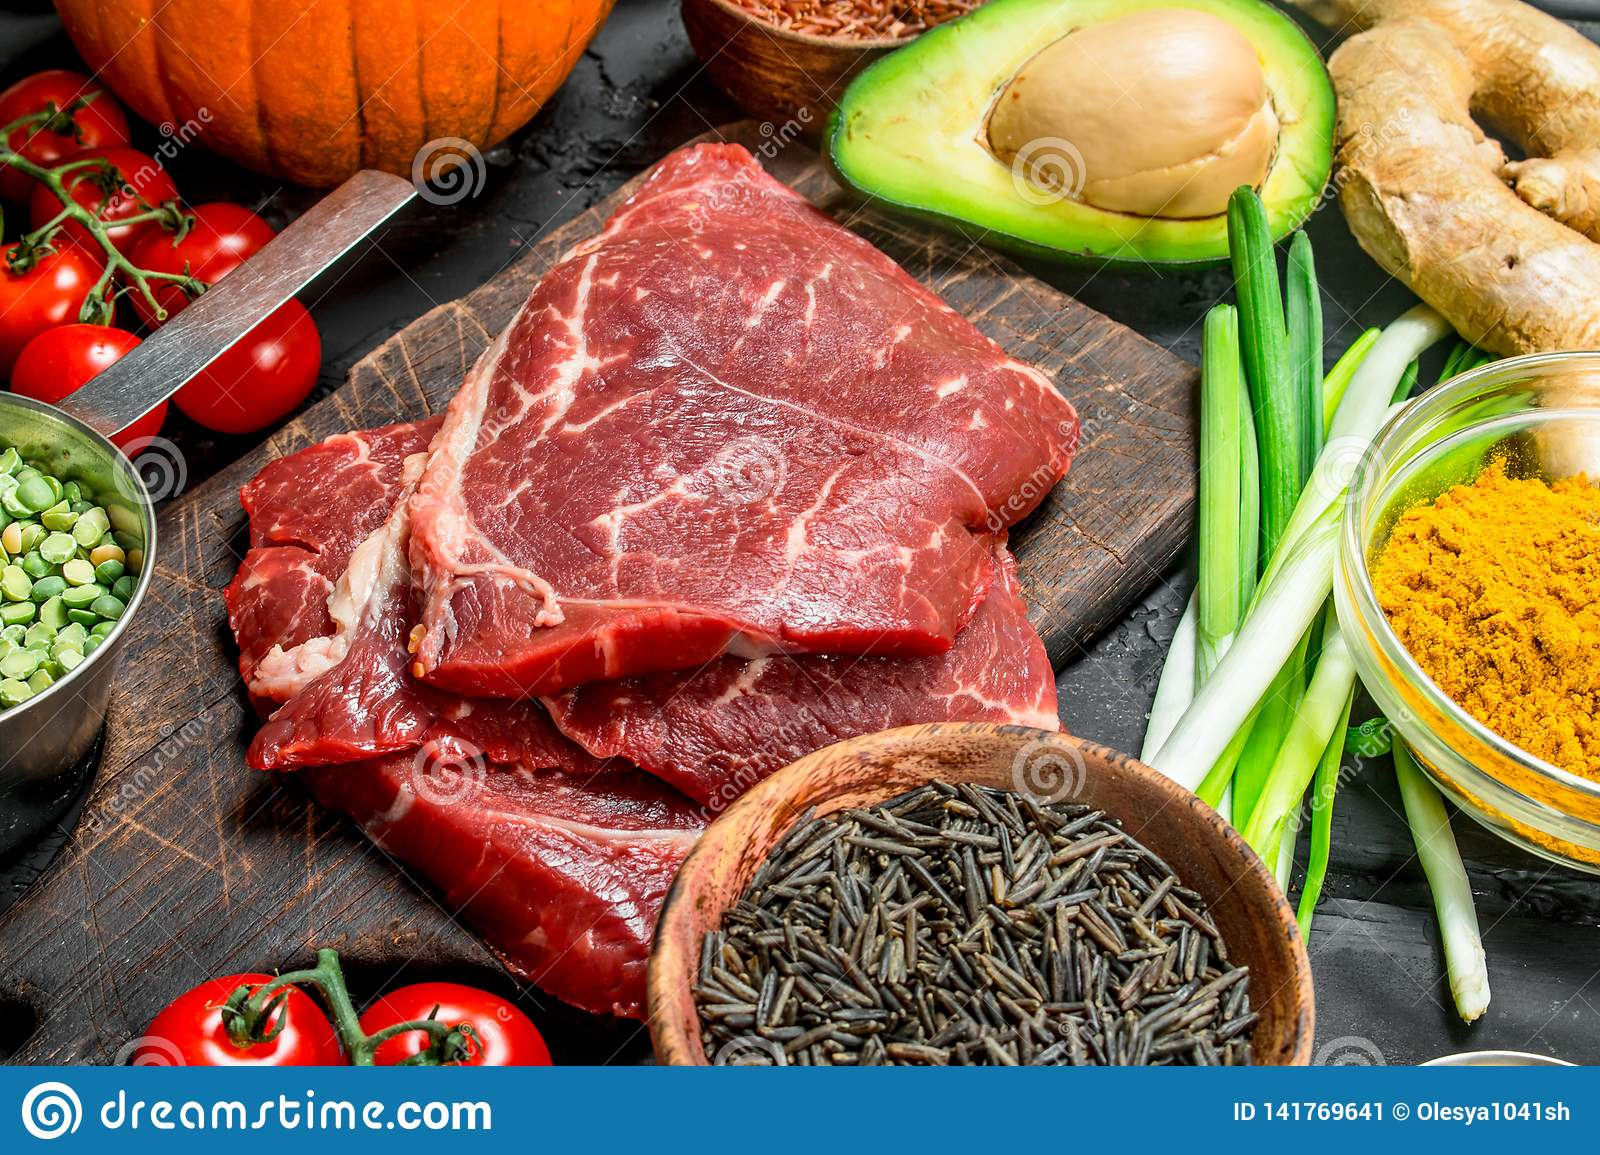 Healthy food. Organic food assortment with raw beef steaks